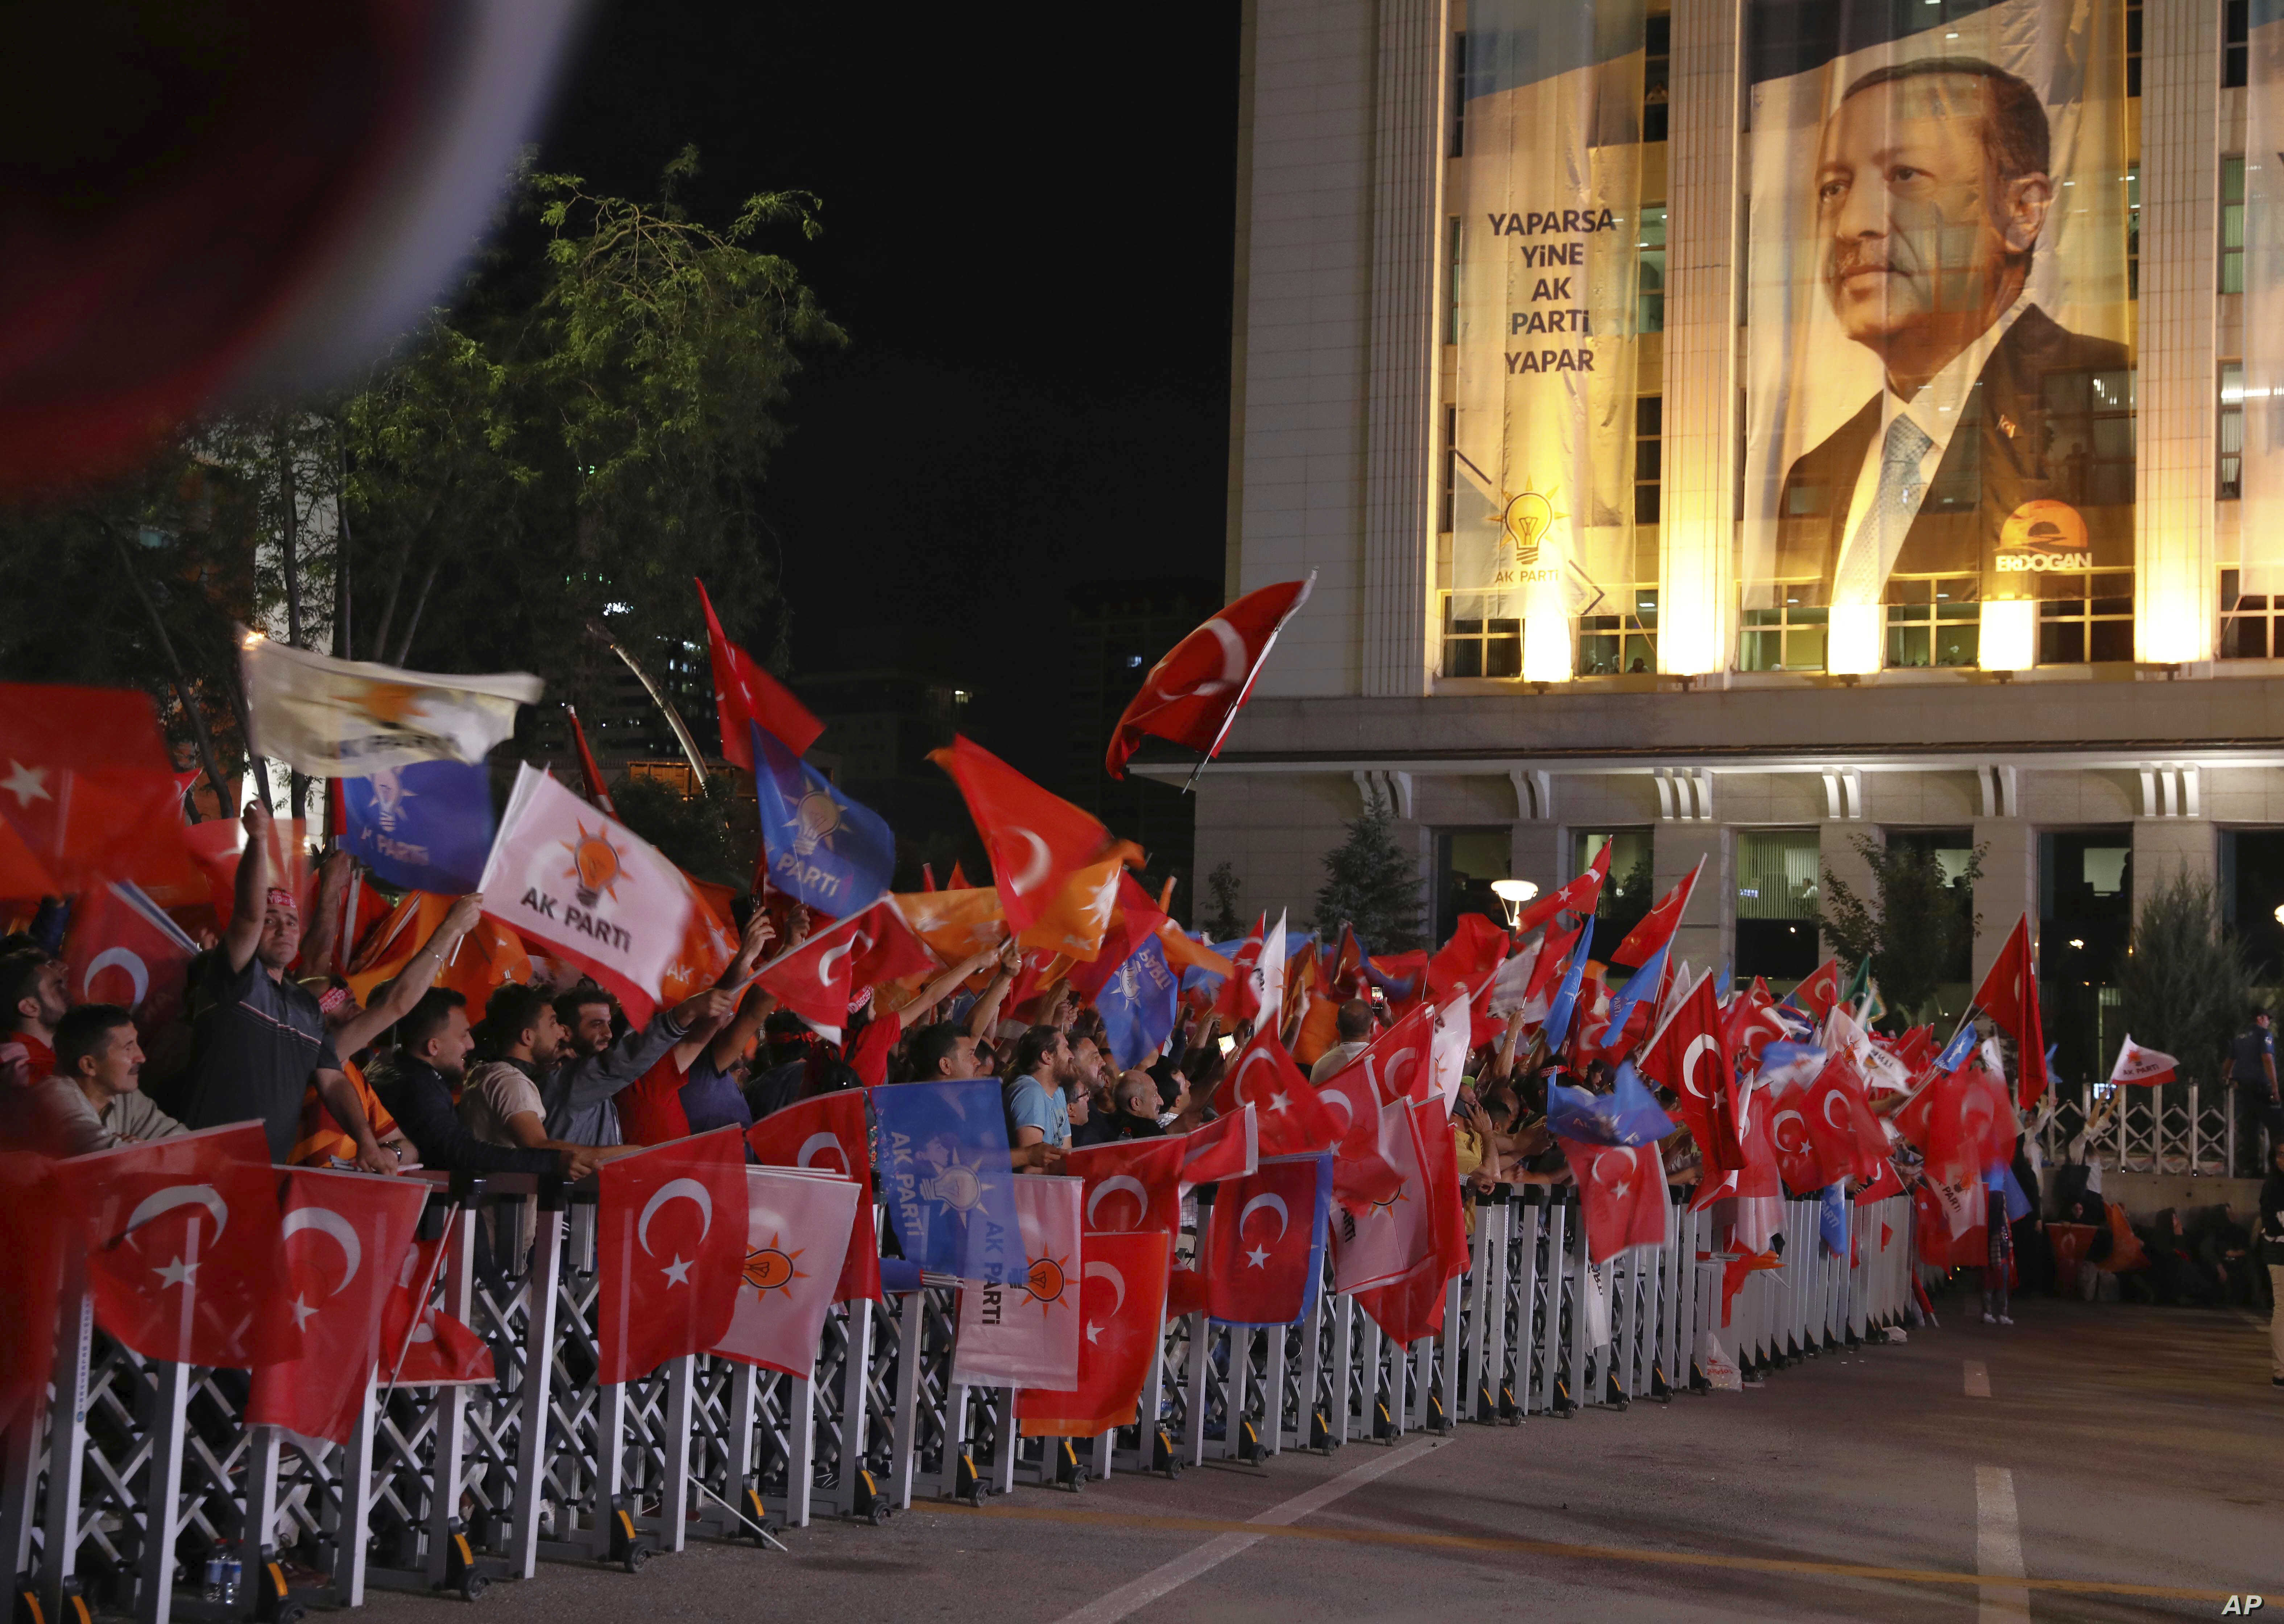 Supporters of Turkey's President and leader of ruling Justice and Development Party Recep Tayyip Erdogan celebrate outside his party's headquarters in Ankara, Turkey, late Sunday, June 24, 2018.